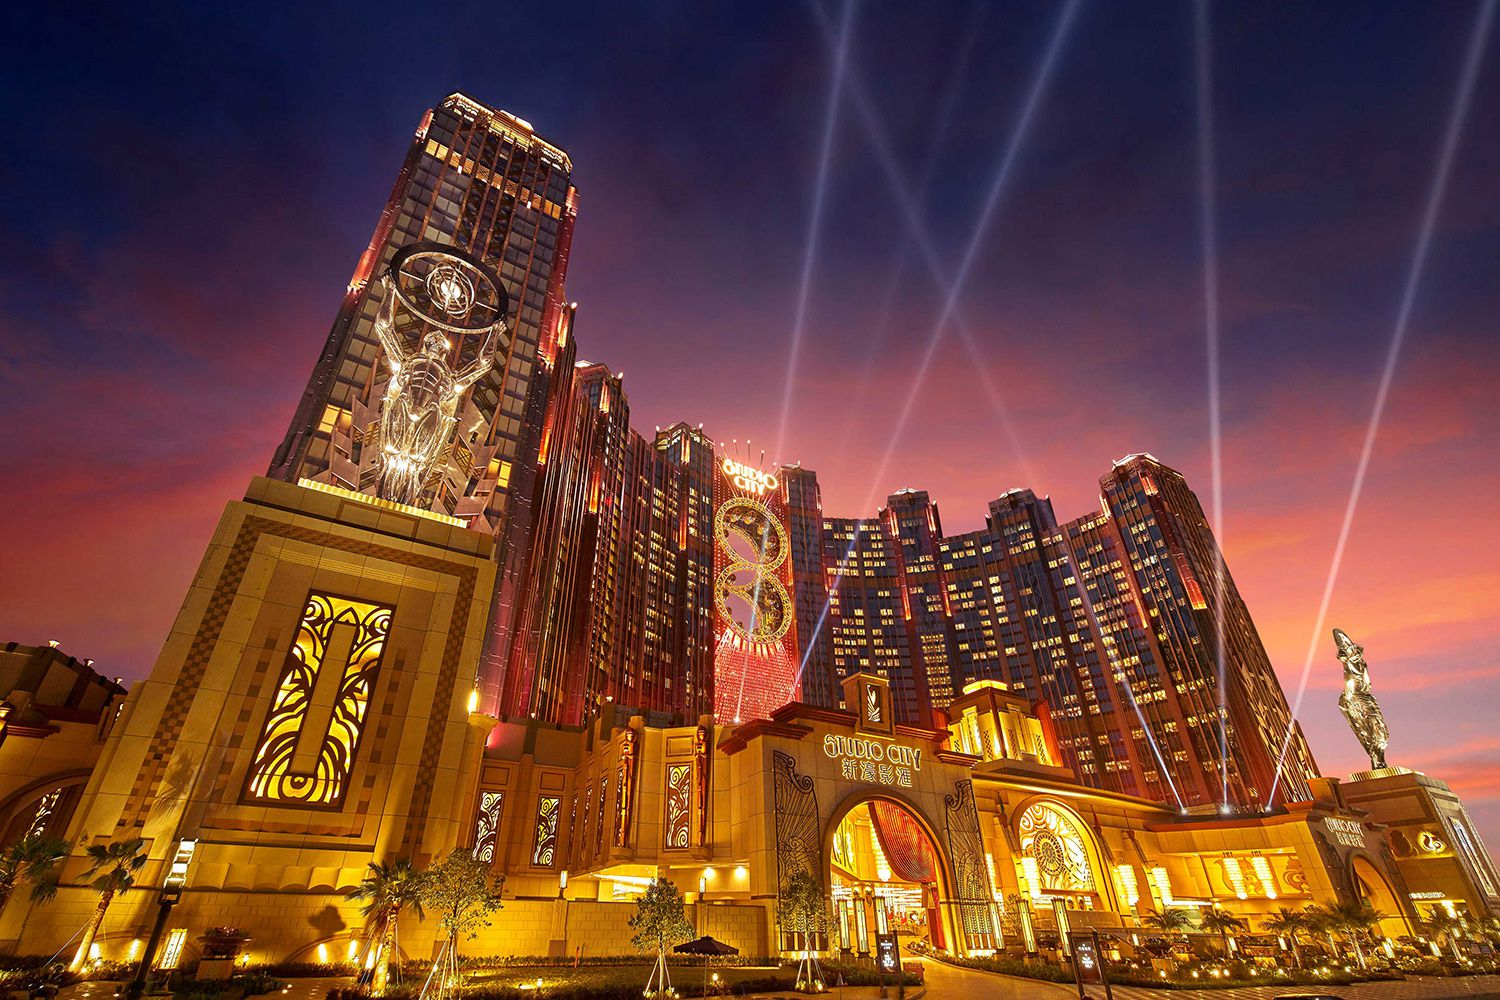 Things to Know When Planning to Visit a Macau Casino